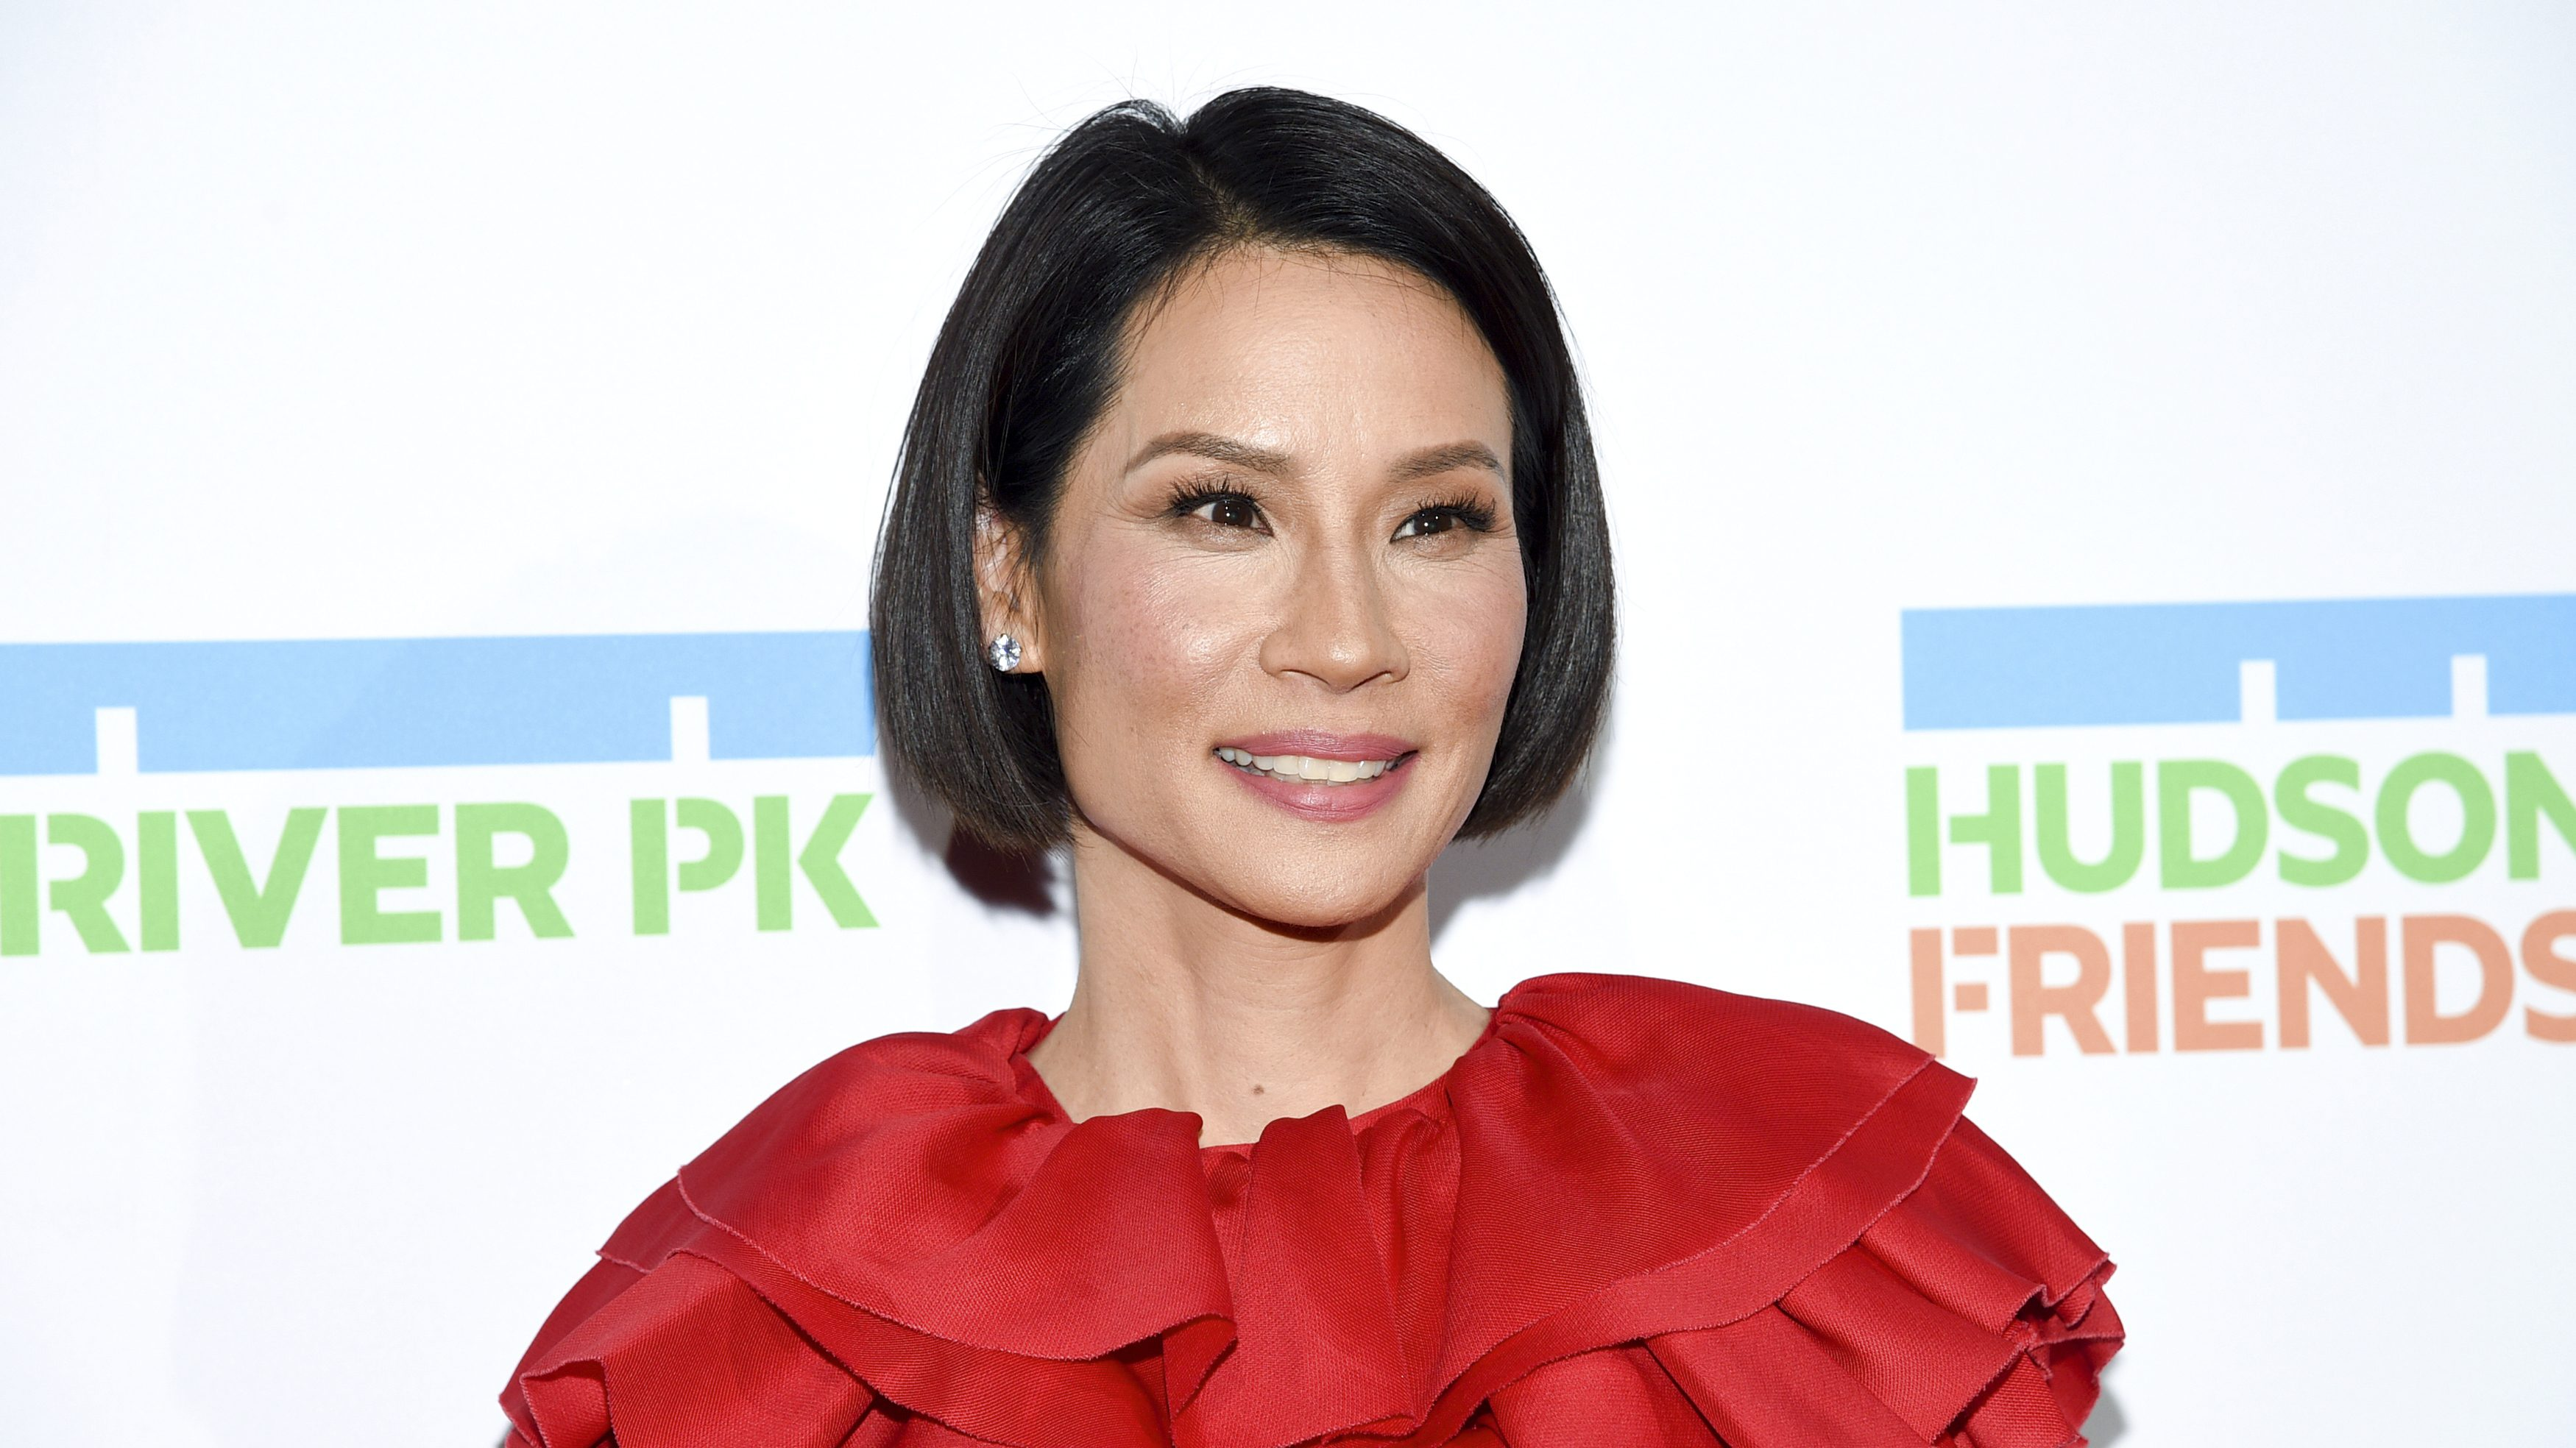 """Lucy Liu Opens Up About Altercation With Bill Murray On Set Of 'Charlie's Angels':  """"I Stood Up For Myself, And I Don't Regret It"""""""